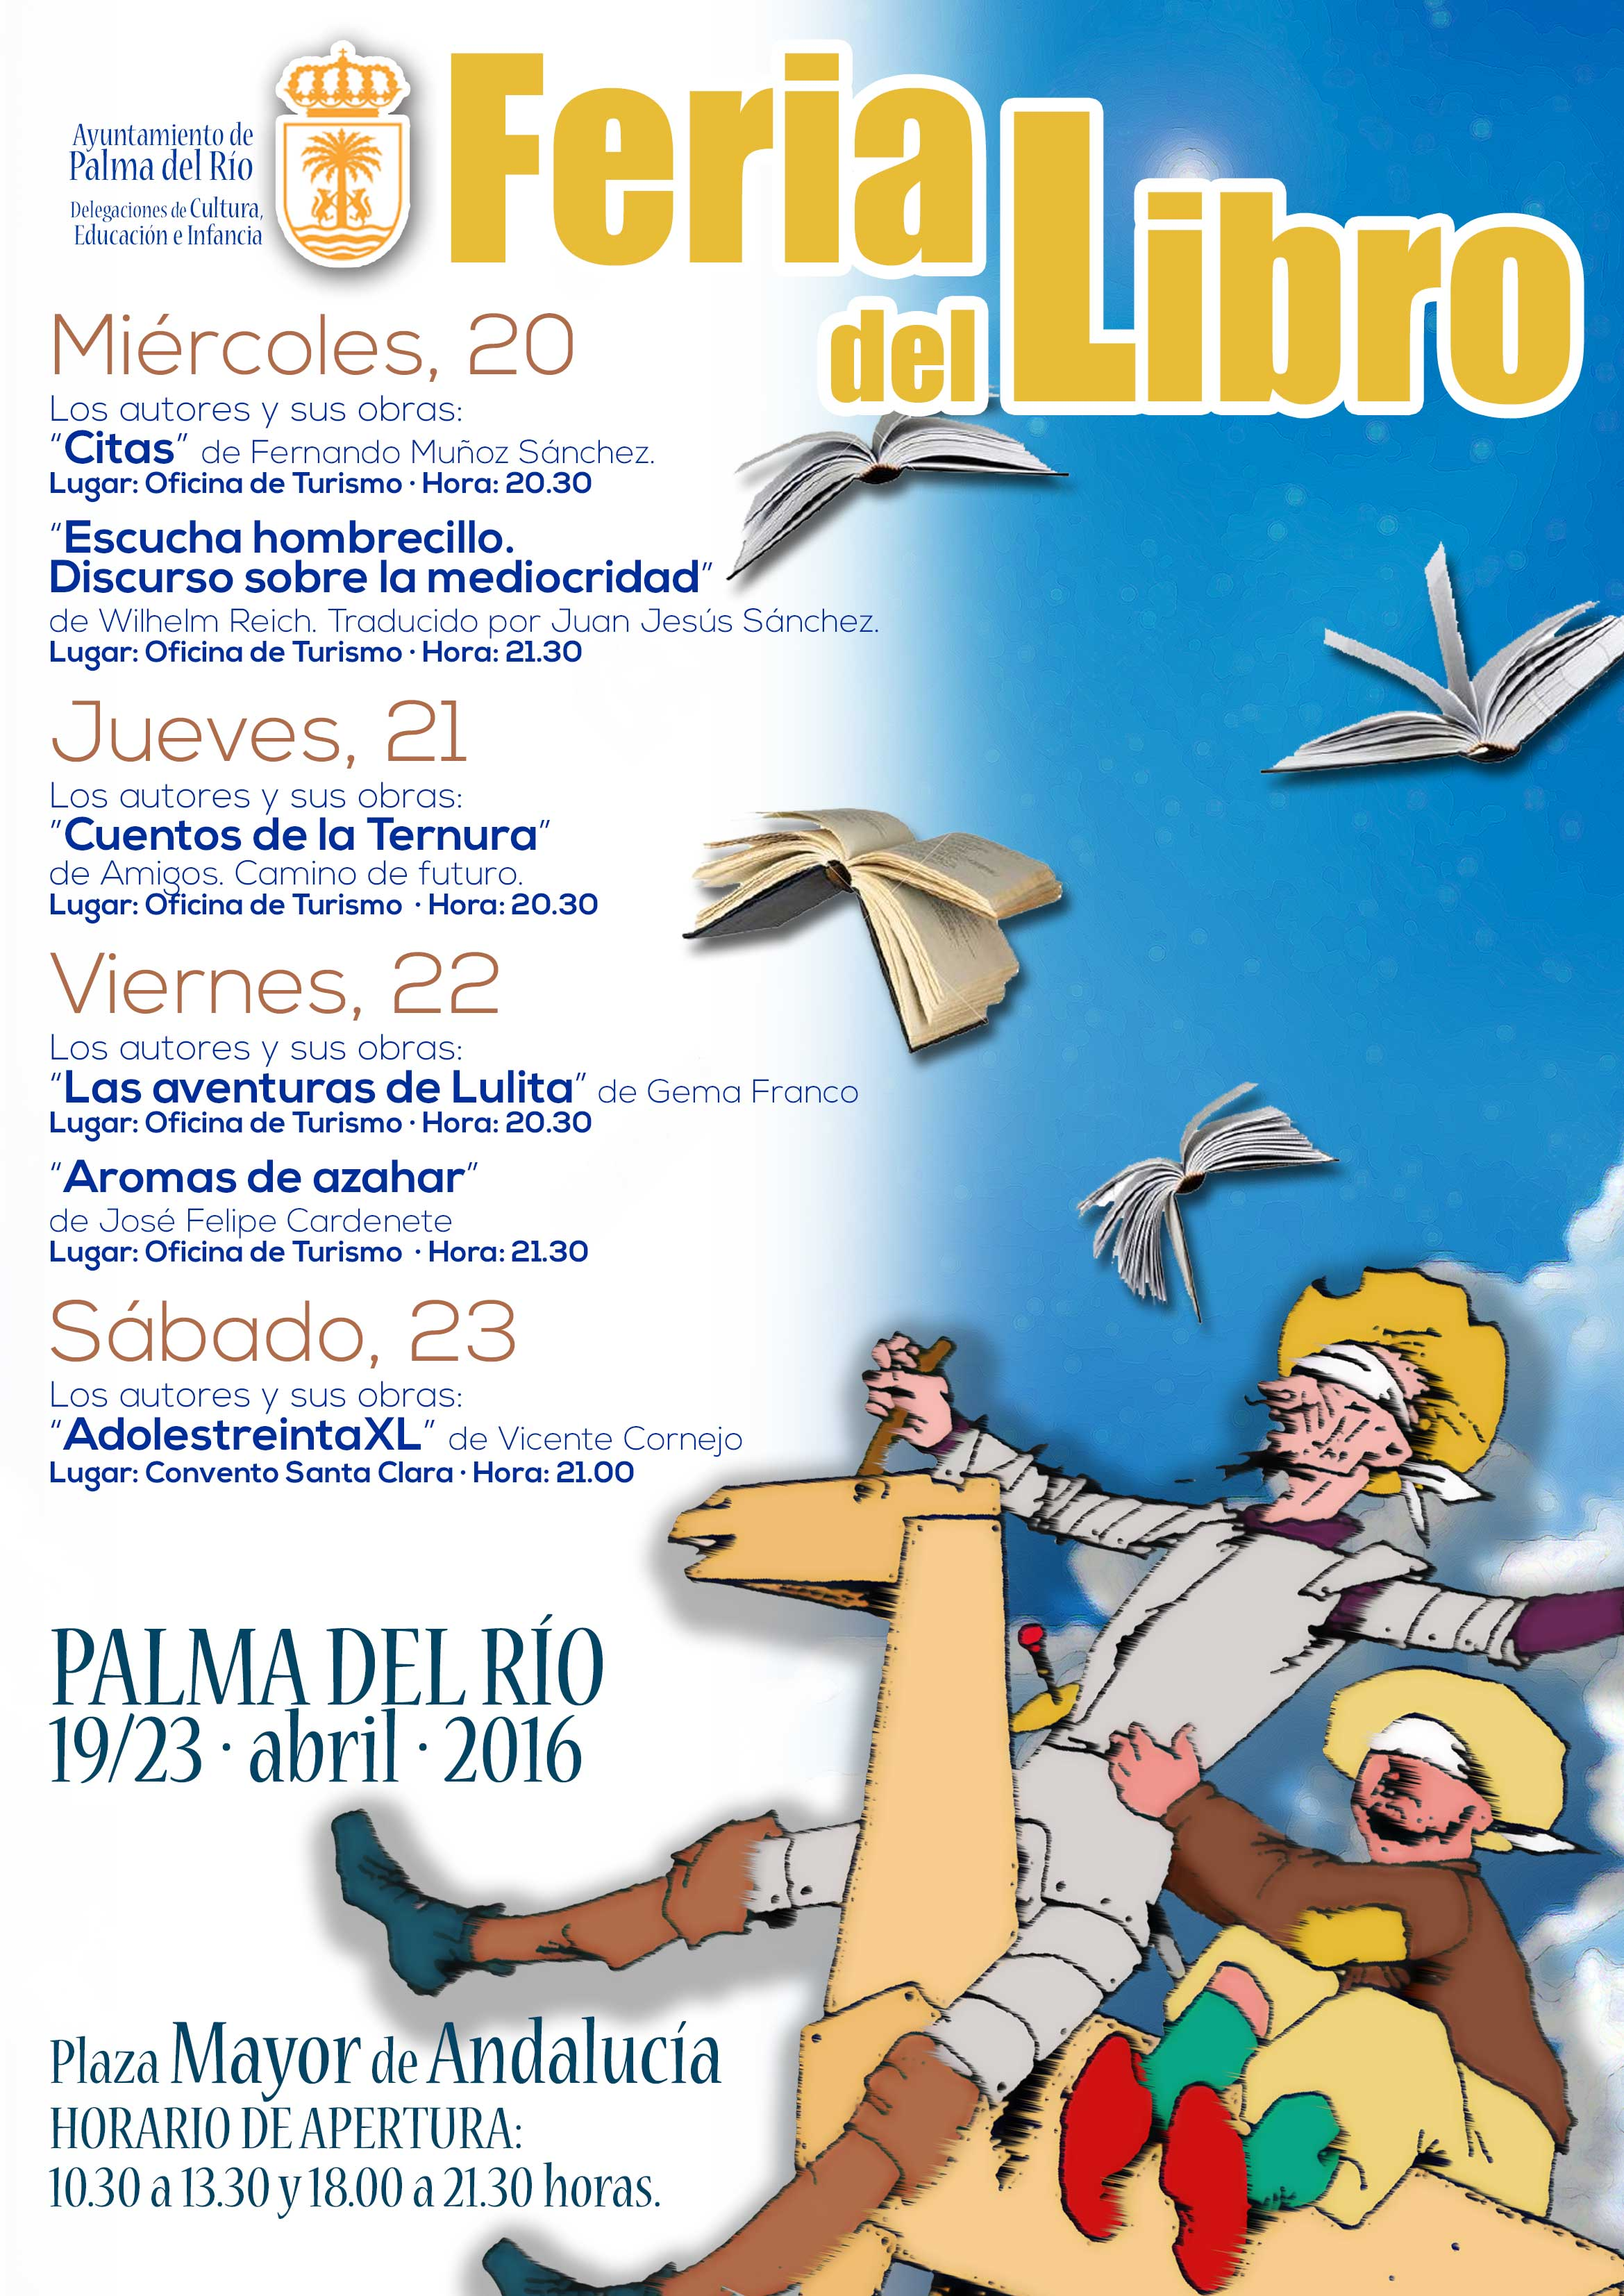 https://www.palmadelrio.es/sites/default/files/cartel-feria-del-libro-presentaciones-2016.jpg